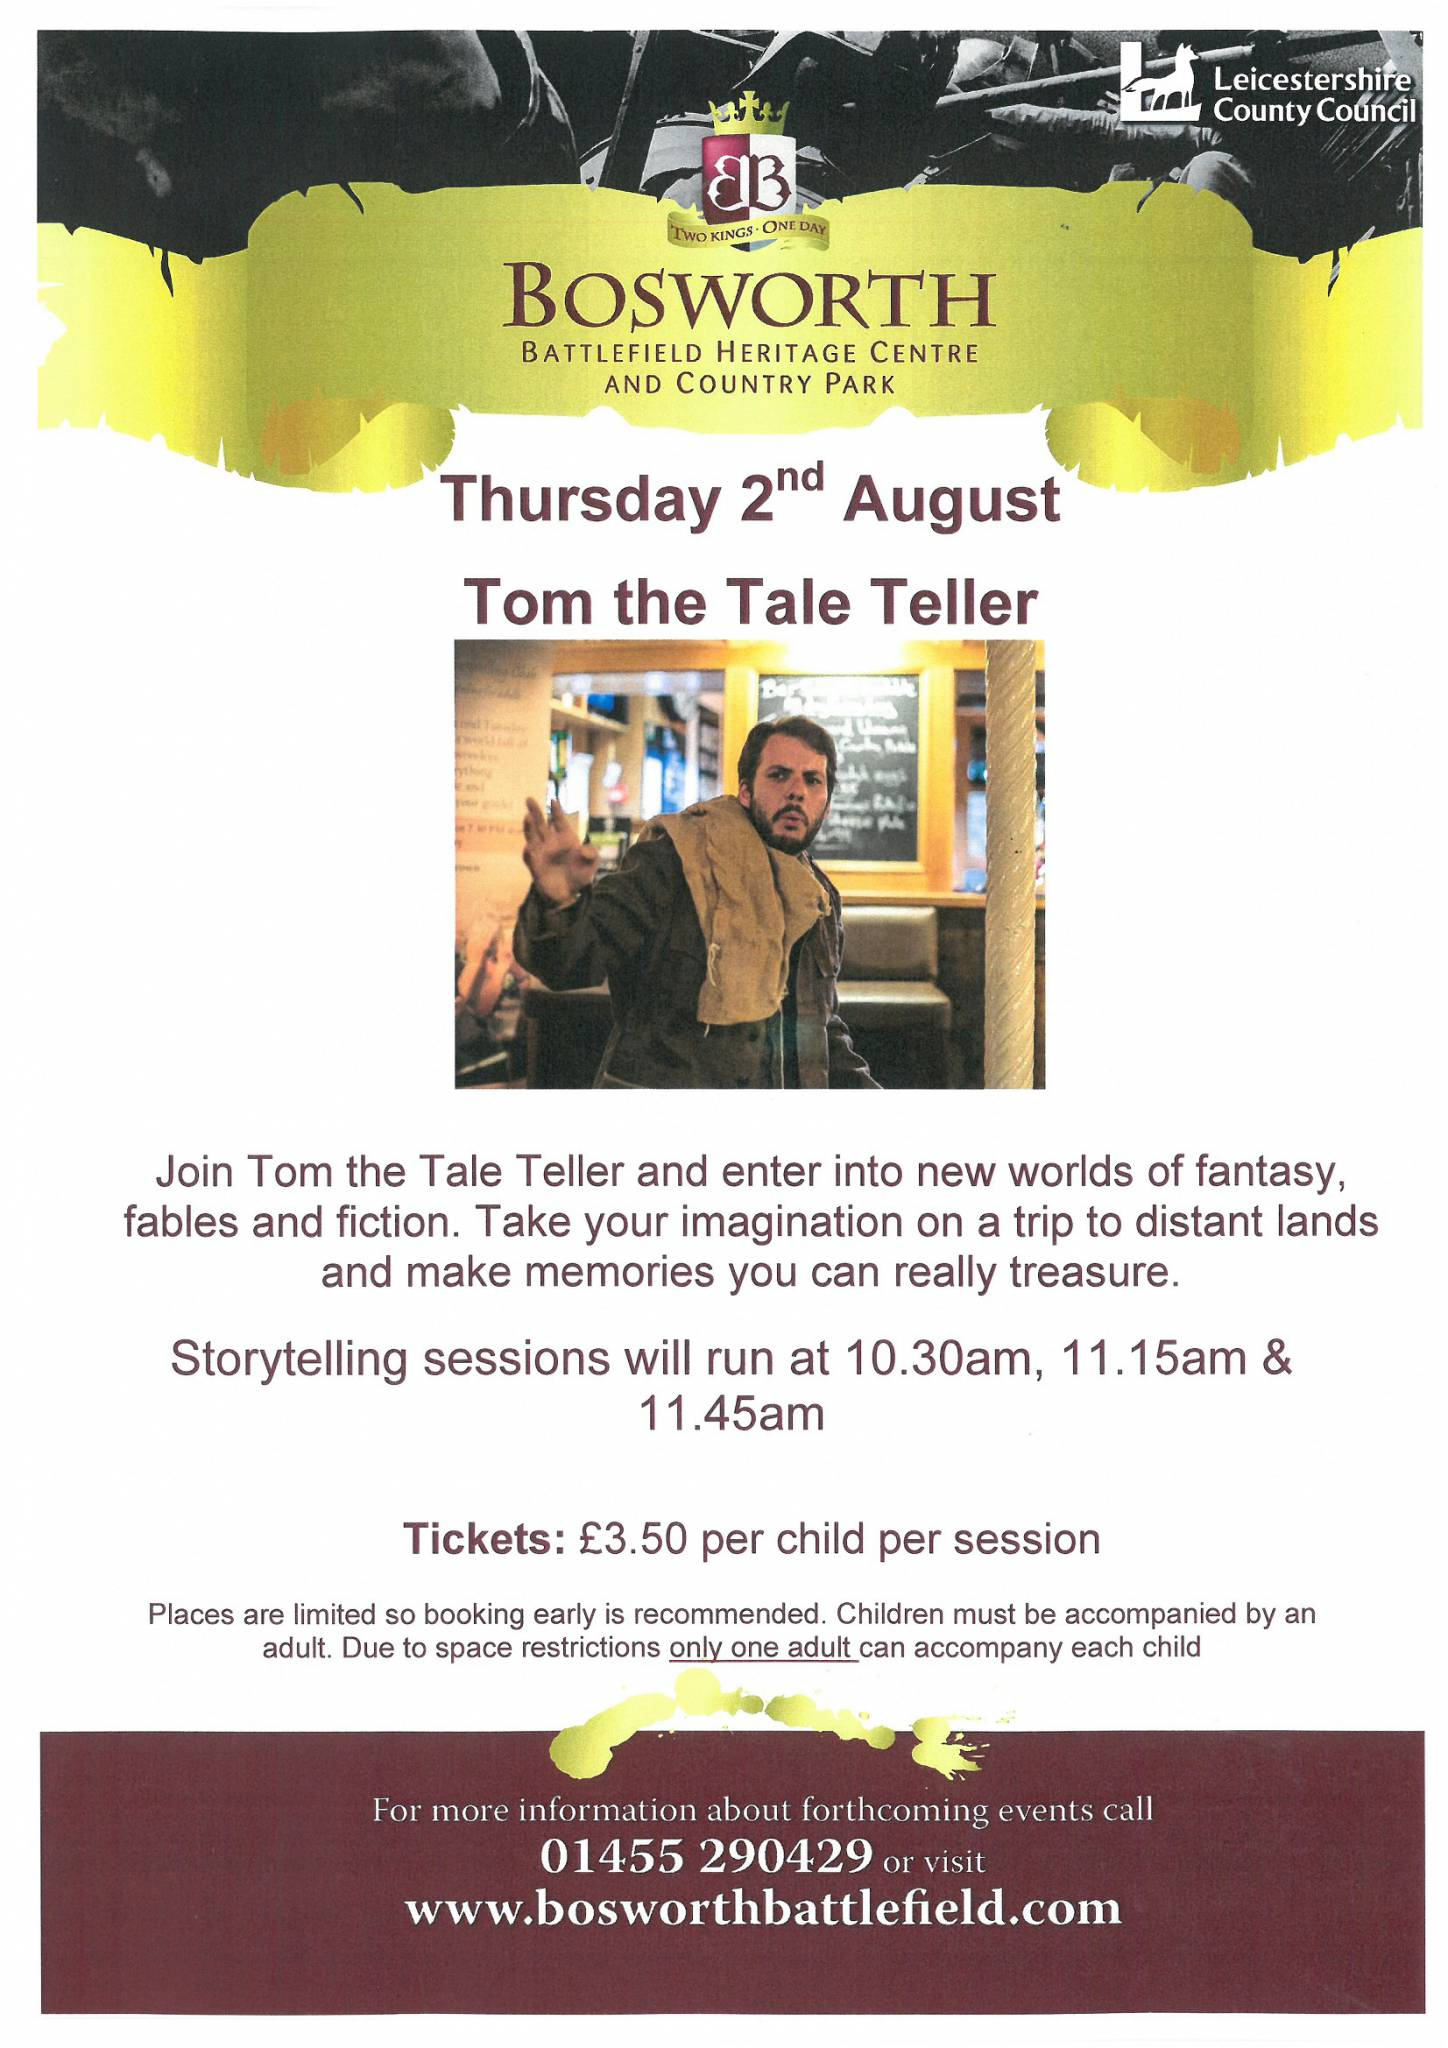 Tom the Tale Teller